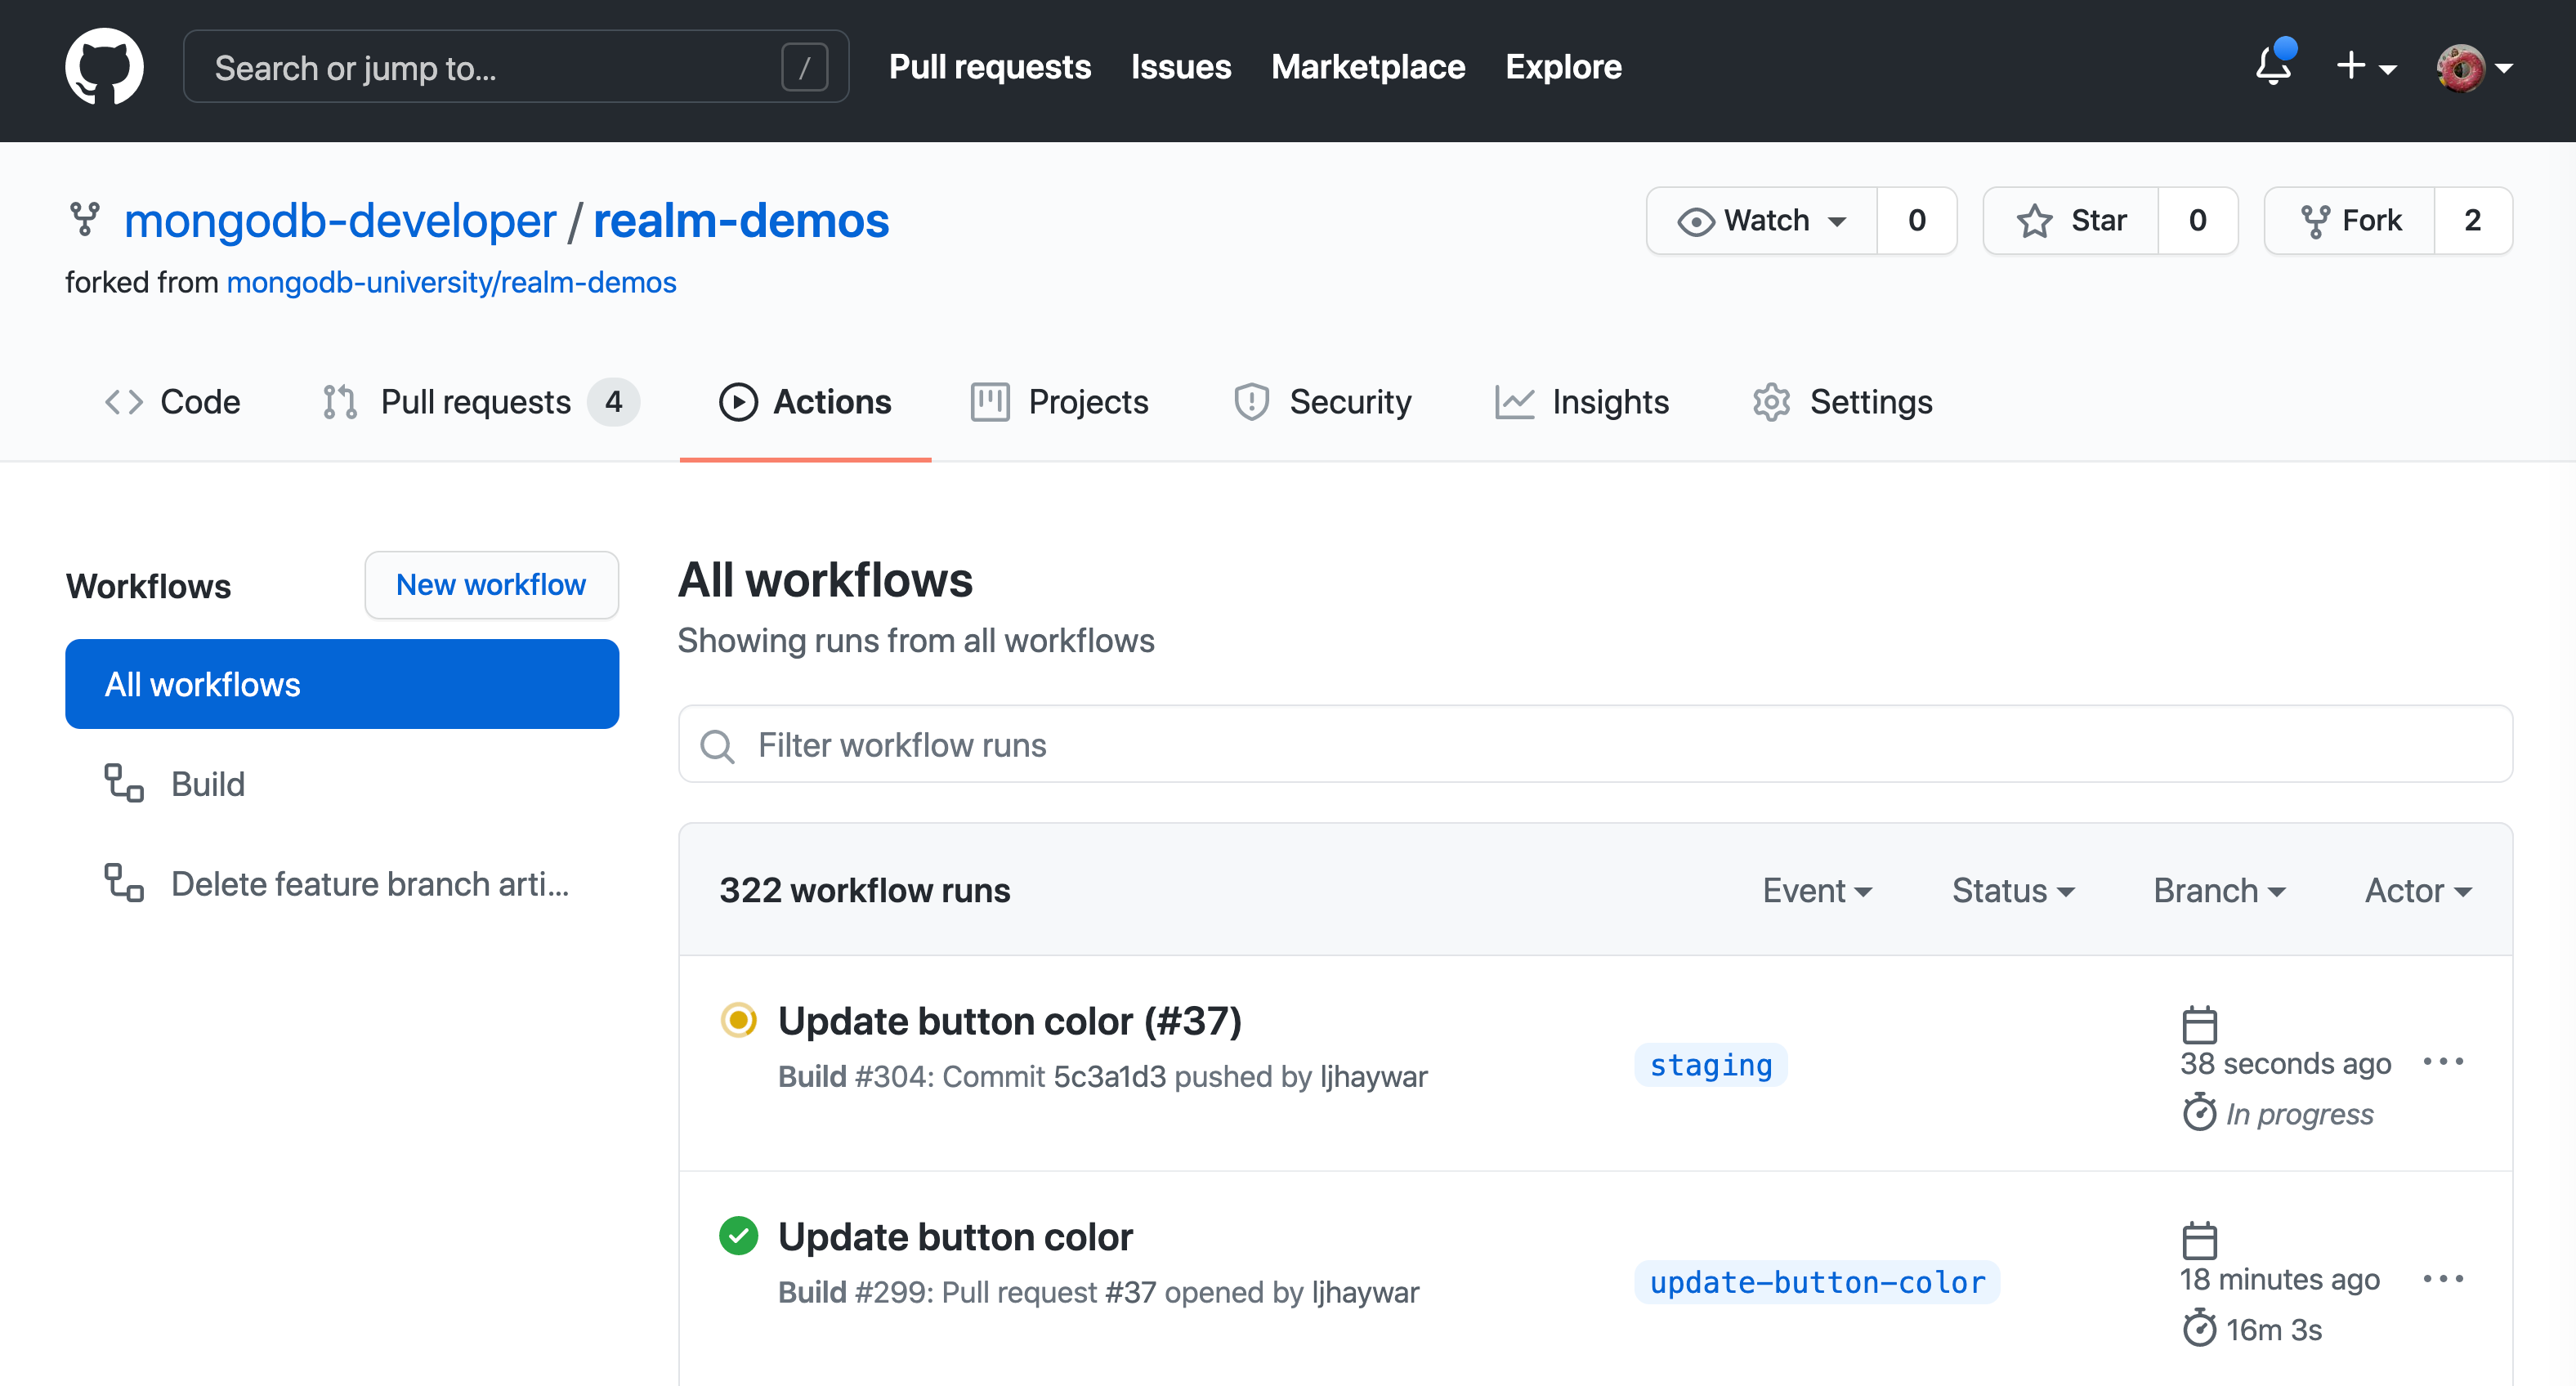 Screenshot of the GitHub Actions web interface after a push to the 'staging' branch triggers a workflow